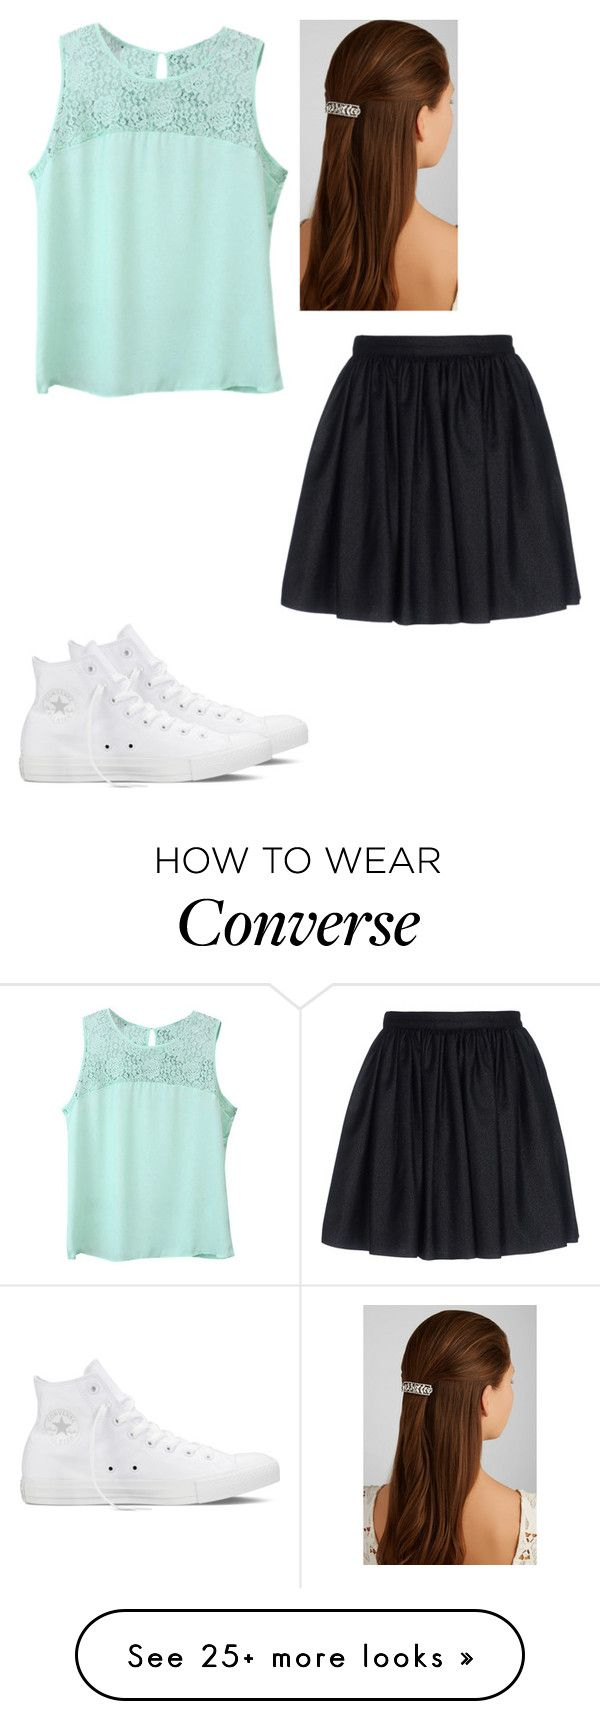 """""""Untitled #84"""" by hannahmcpherson12 on Polyvore featuring Jennifer Behr, Converse and Mauro Grifoni"""